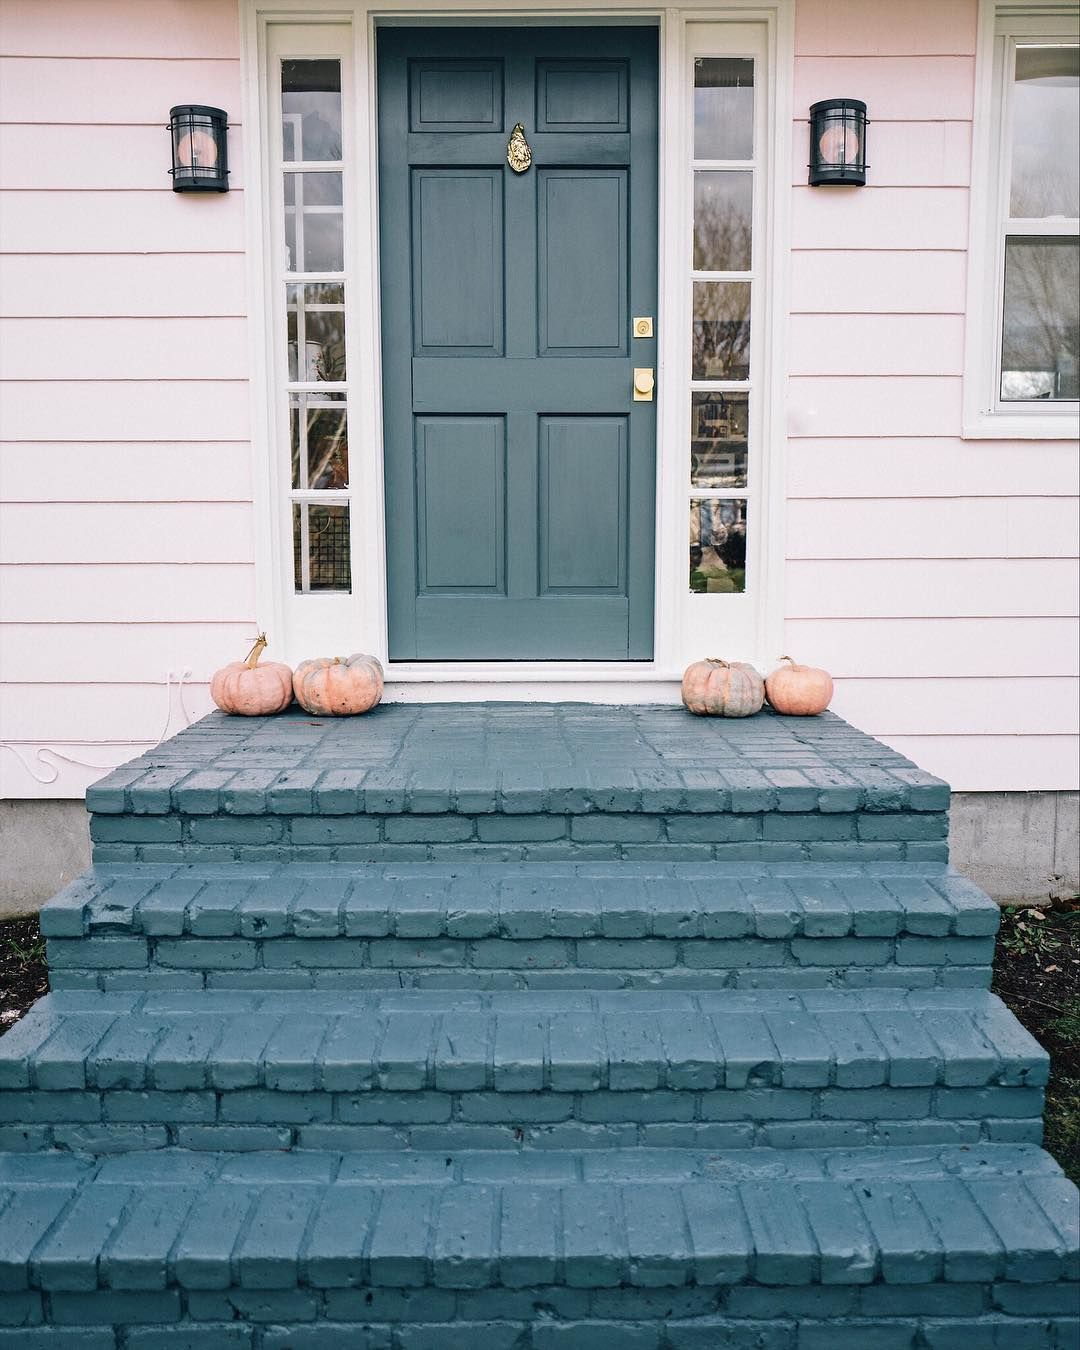 Farrow Ball Us On Twitter In 2020 Brick Steps House Paint Exterior Concrete Patio Makeover